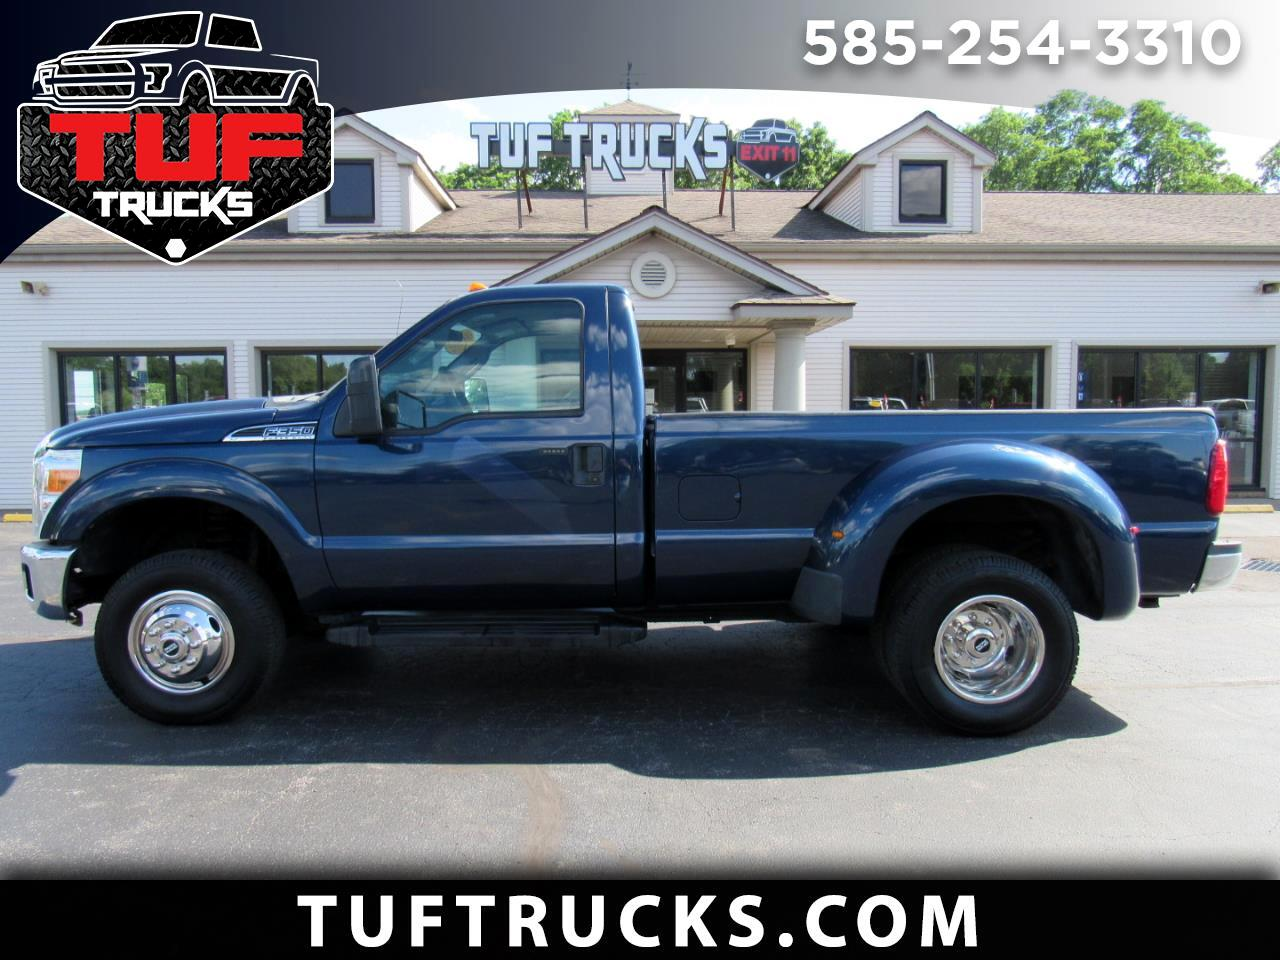 Ford F-350 SD XLT DRW 4WD 2013